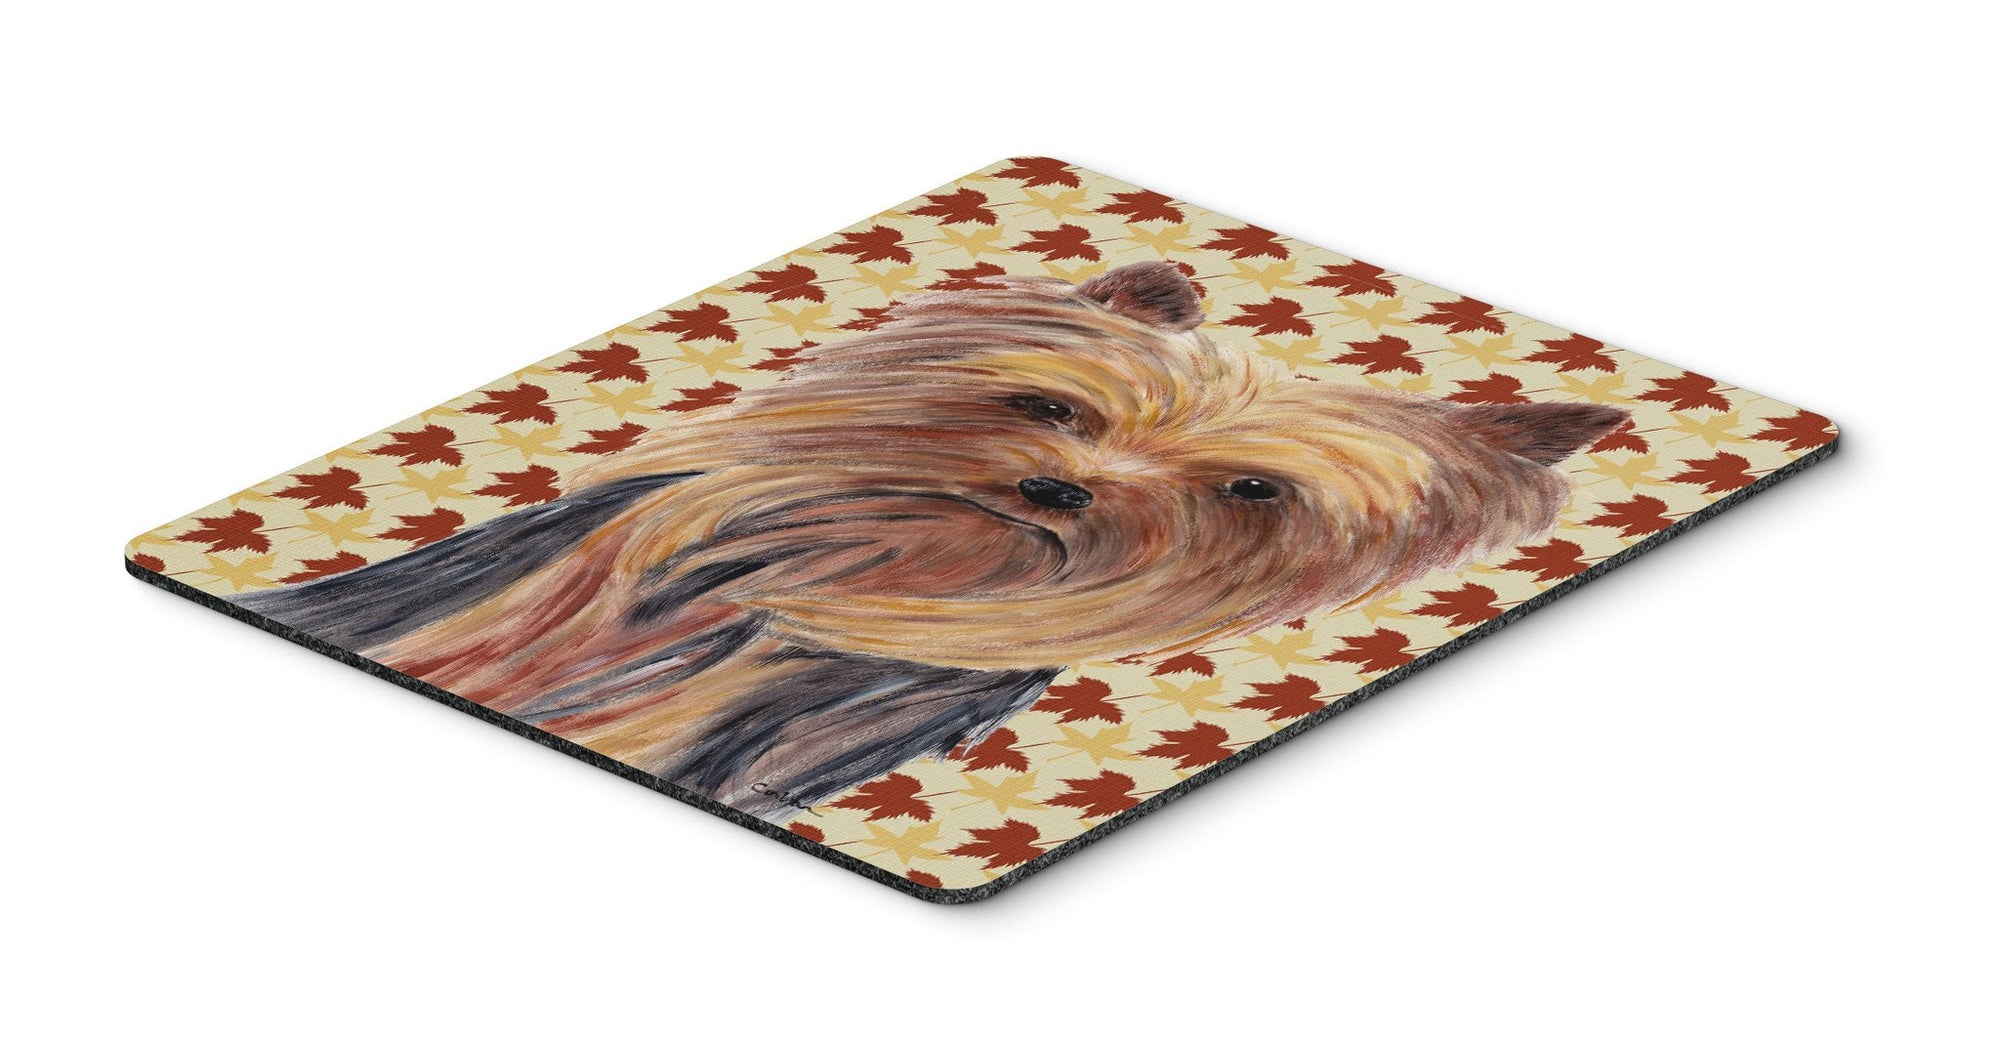 Buy this Yorkie Fall Leaves Portrait Mouse Pad, Hot Pad or Trivet